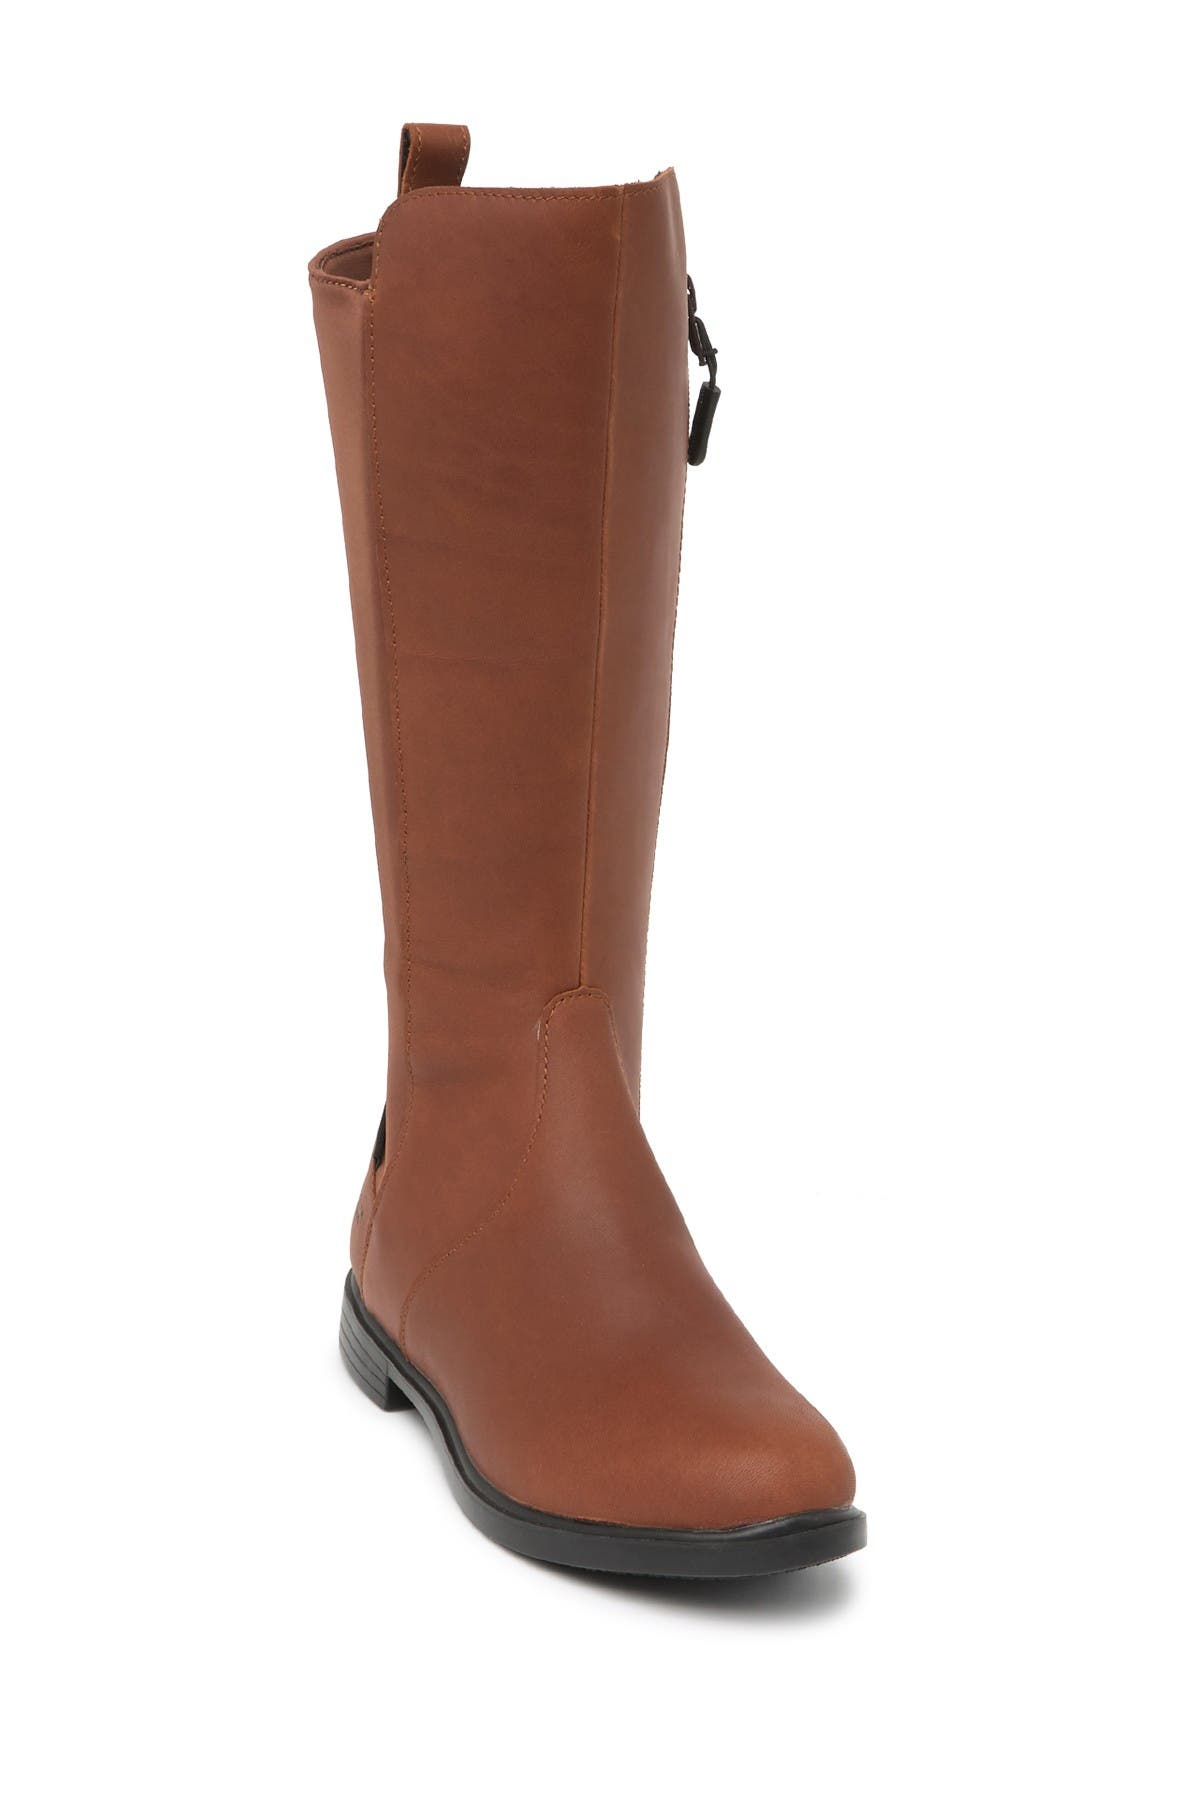 Image of BAFFIN Stratford Tall Boot